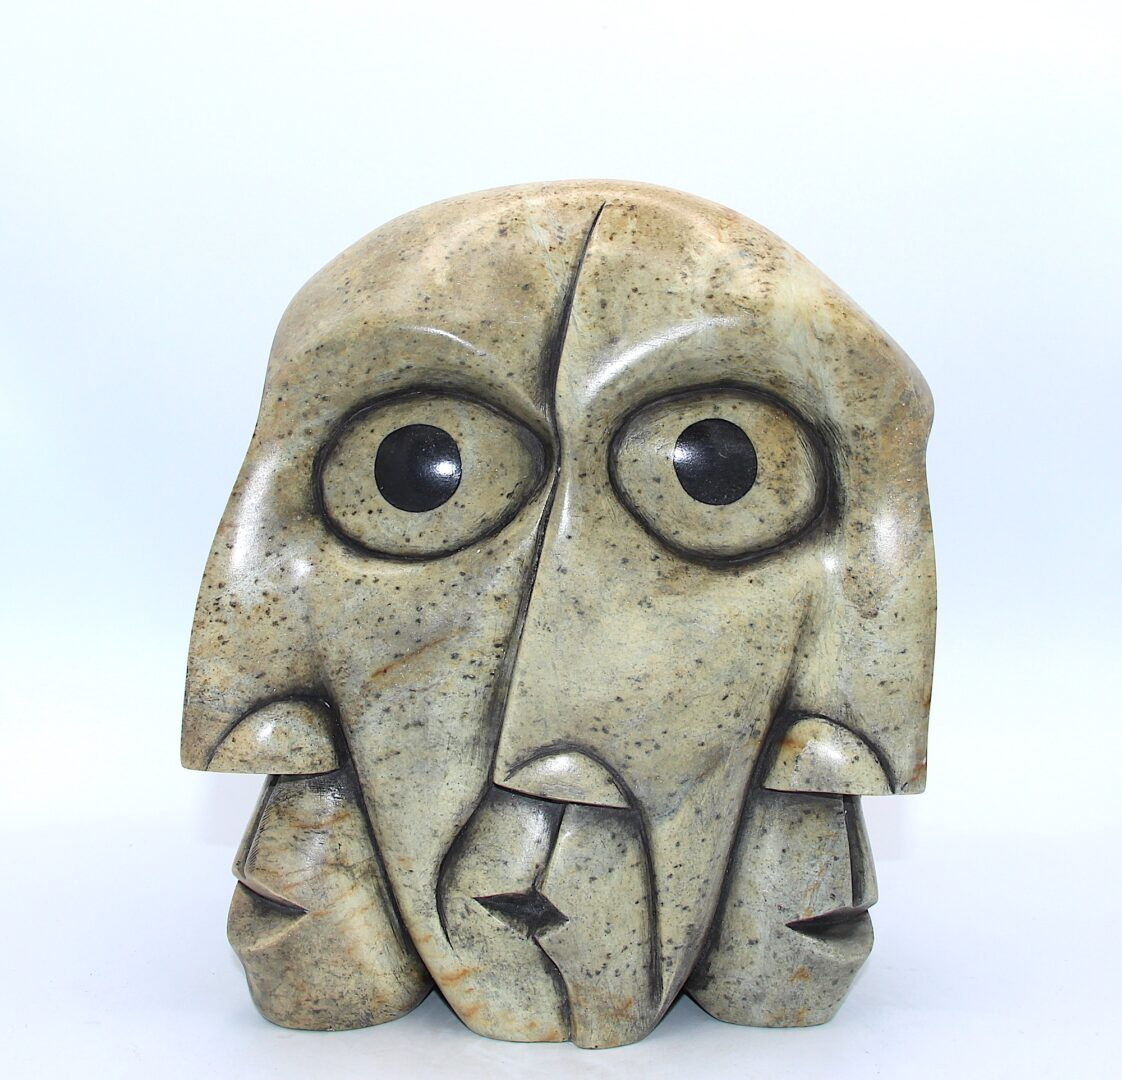 free my mind iroquois art sculpture made in soapstone